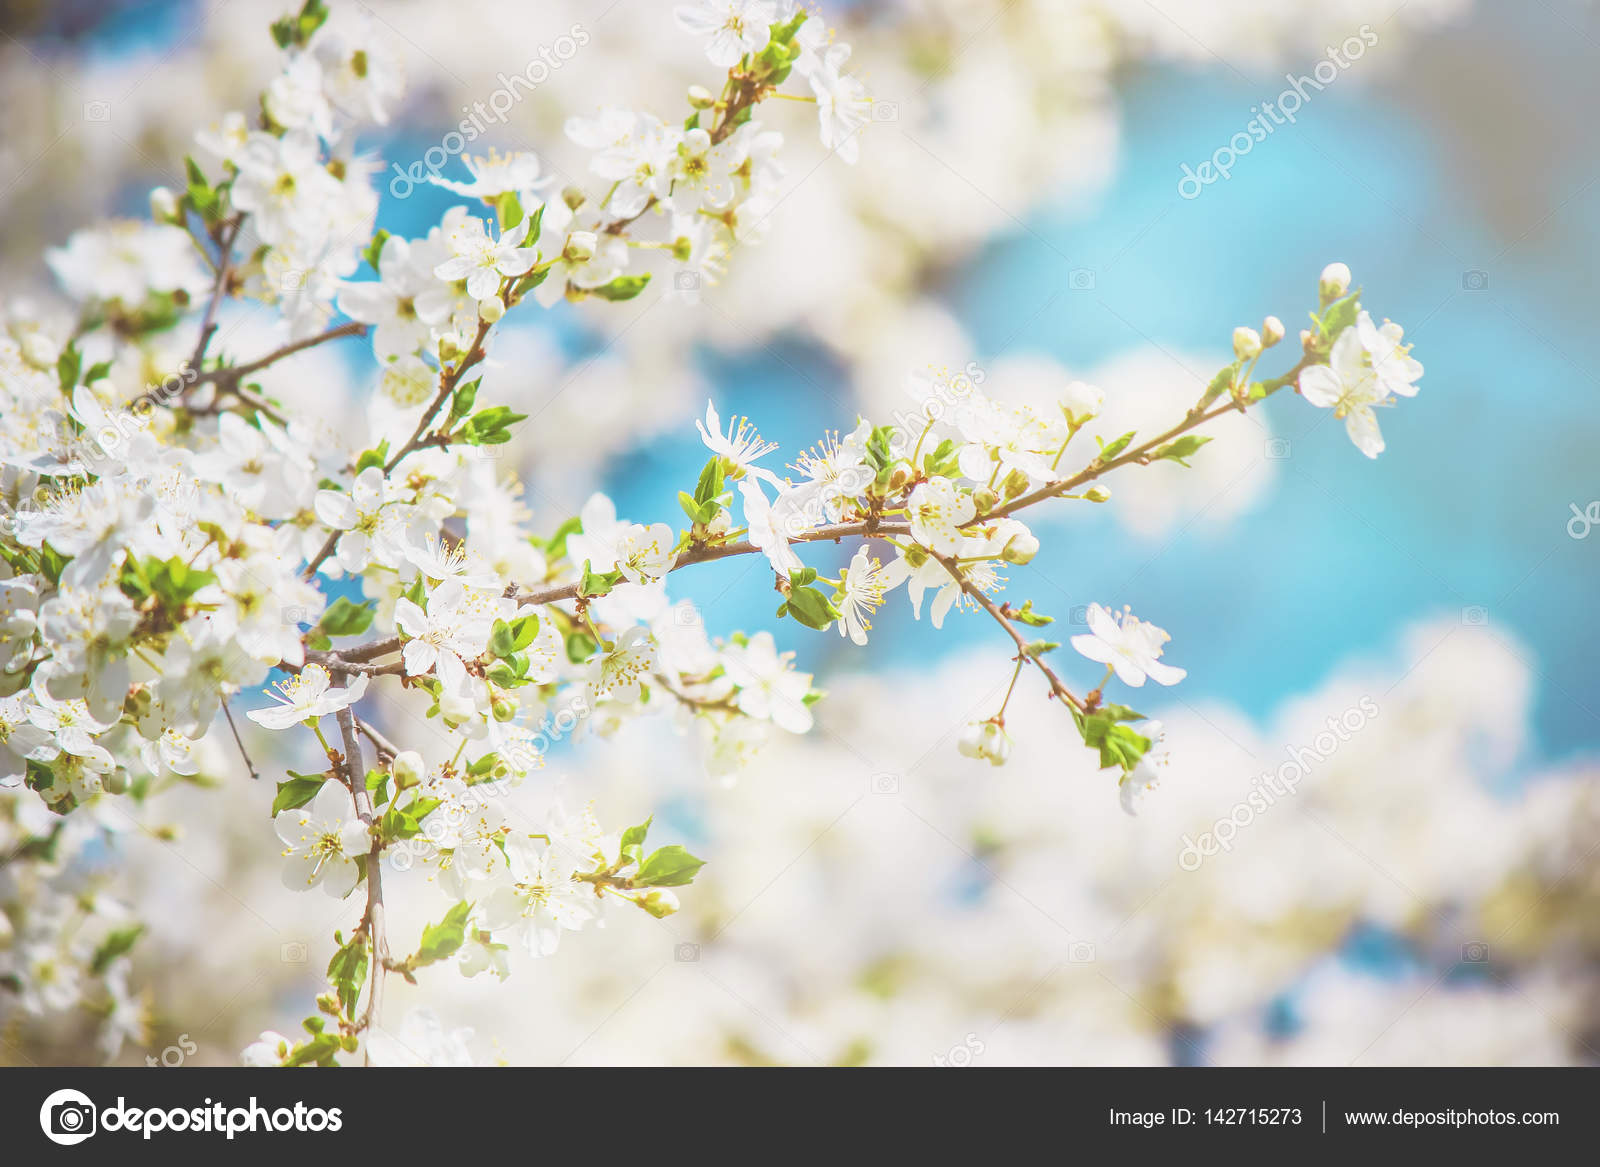 Flowering trees white flowers in the spring selective focus flowering trees white flowers in the spring selective focus stock photo mightylinksfo